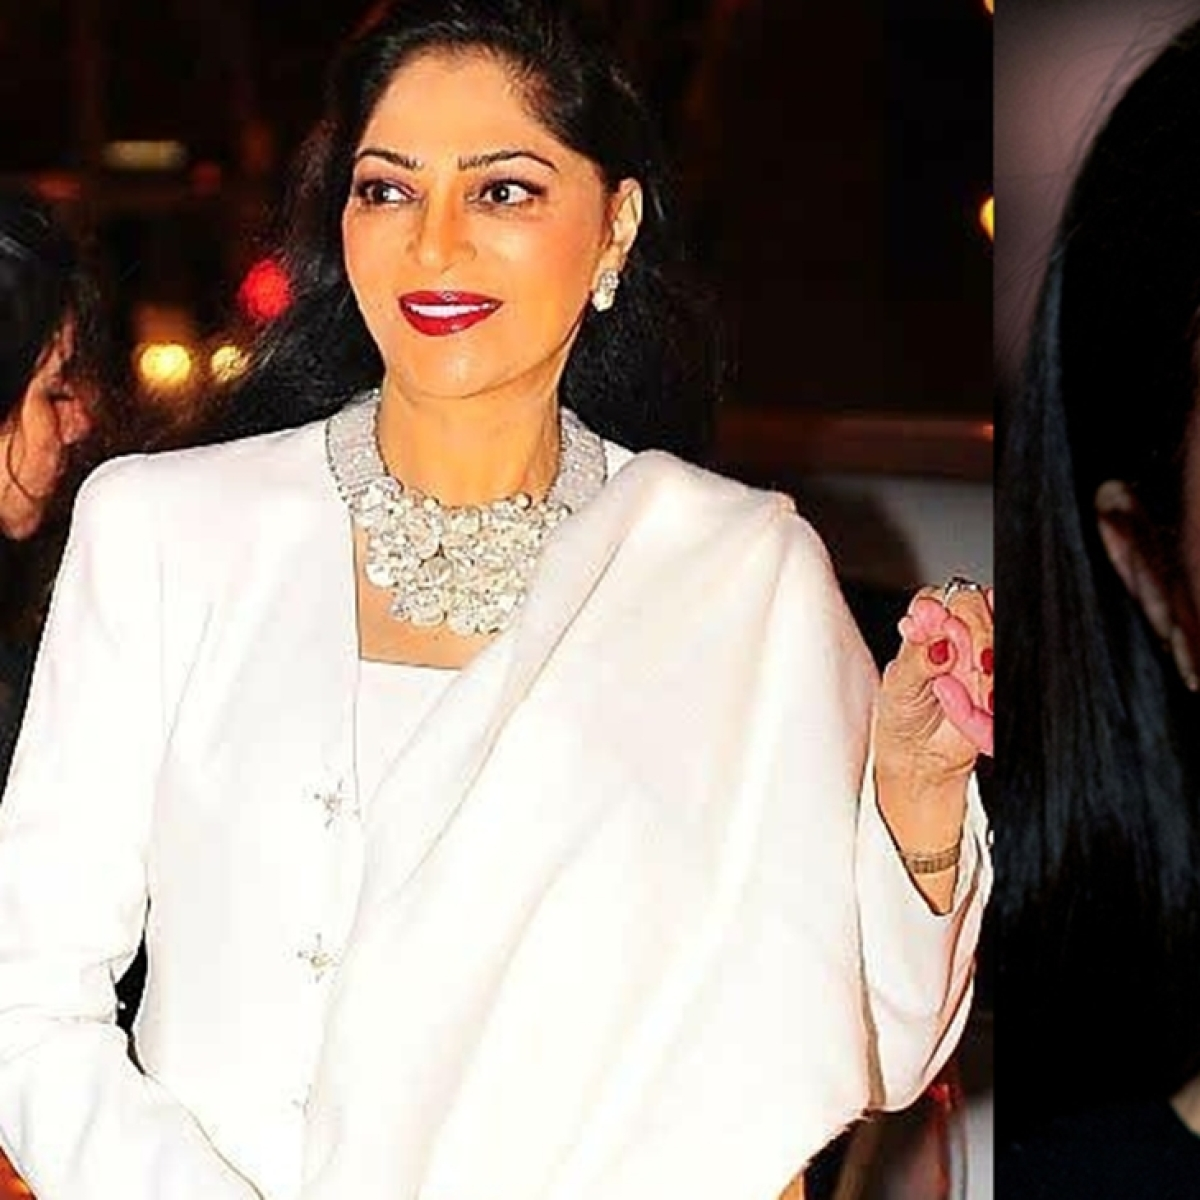 'I don't respect women who break up homes': Simi Garewal after calling Meghan Markle 'liar' and 'evil'